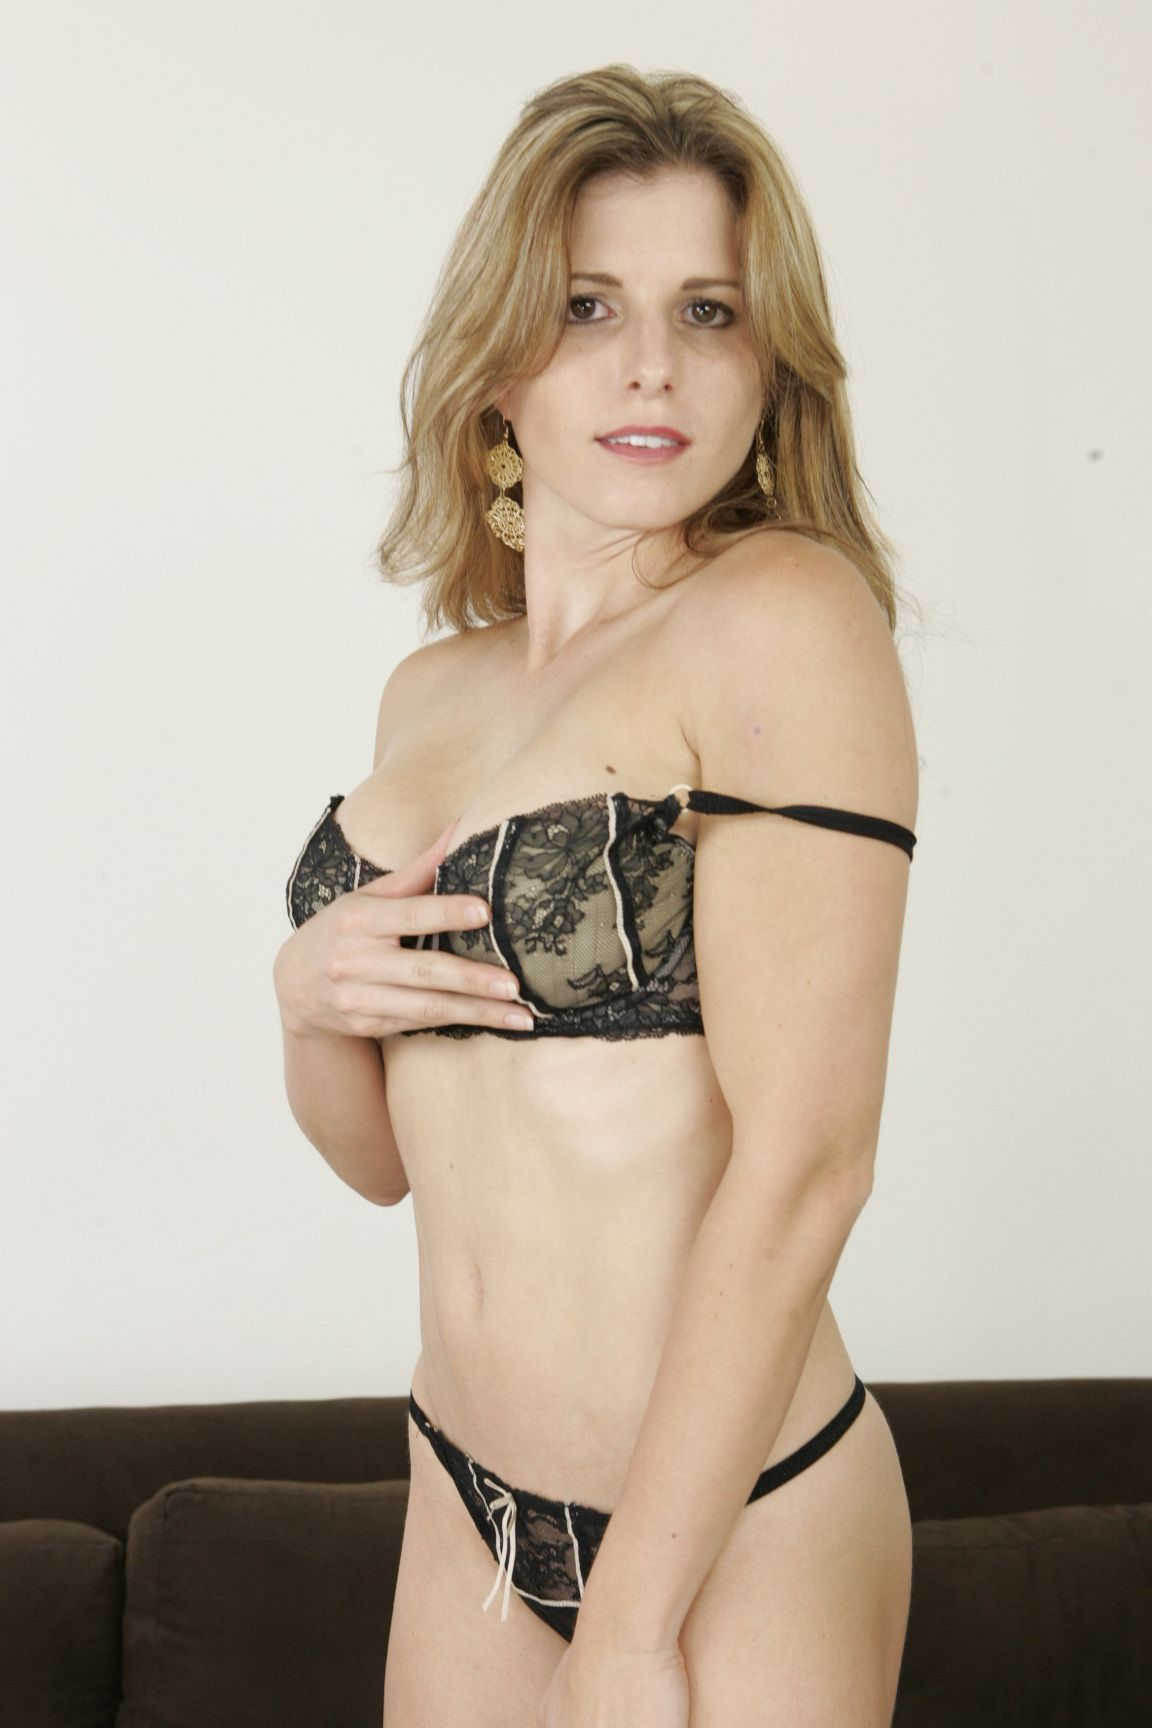 cory chase abs